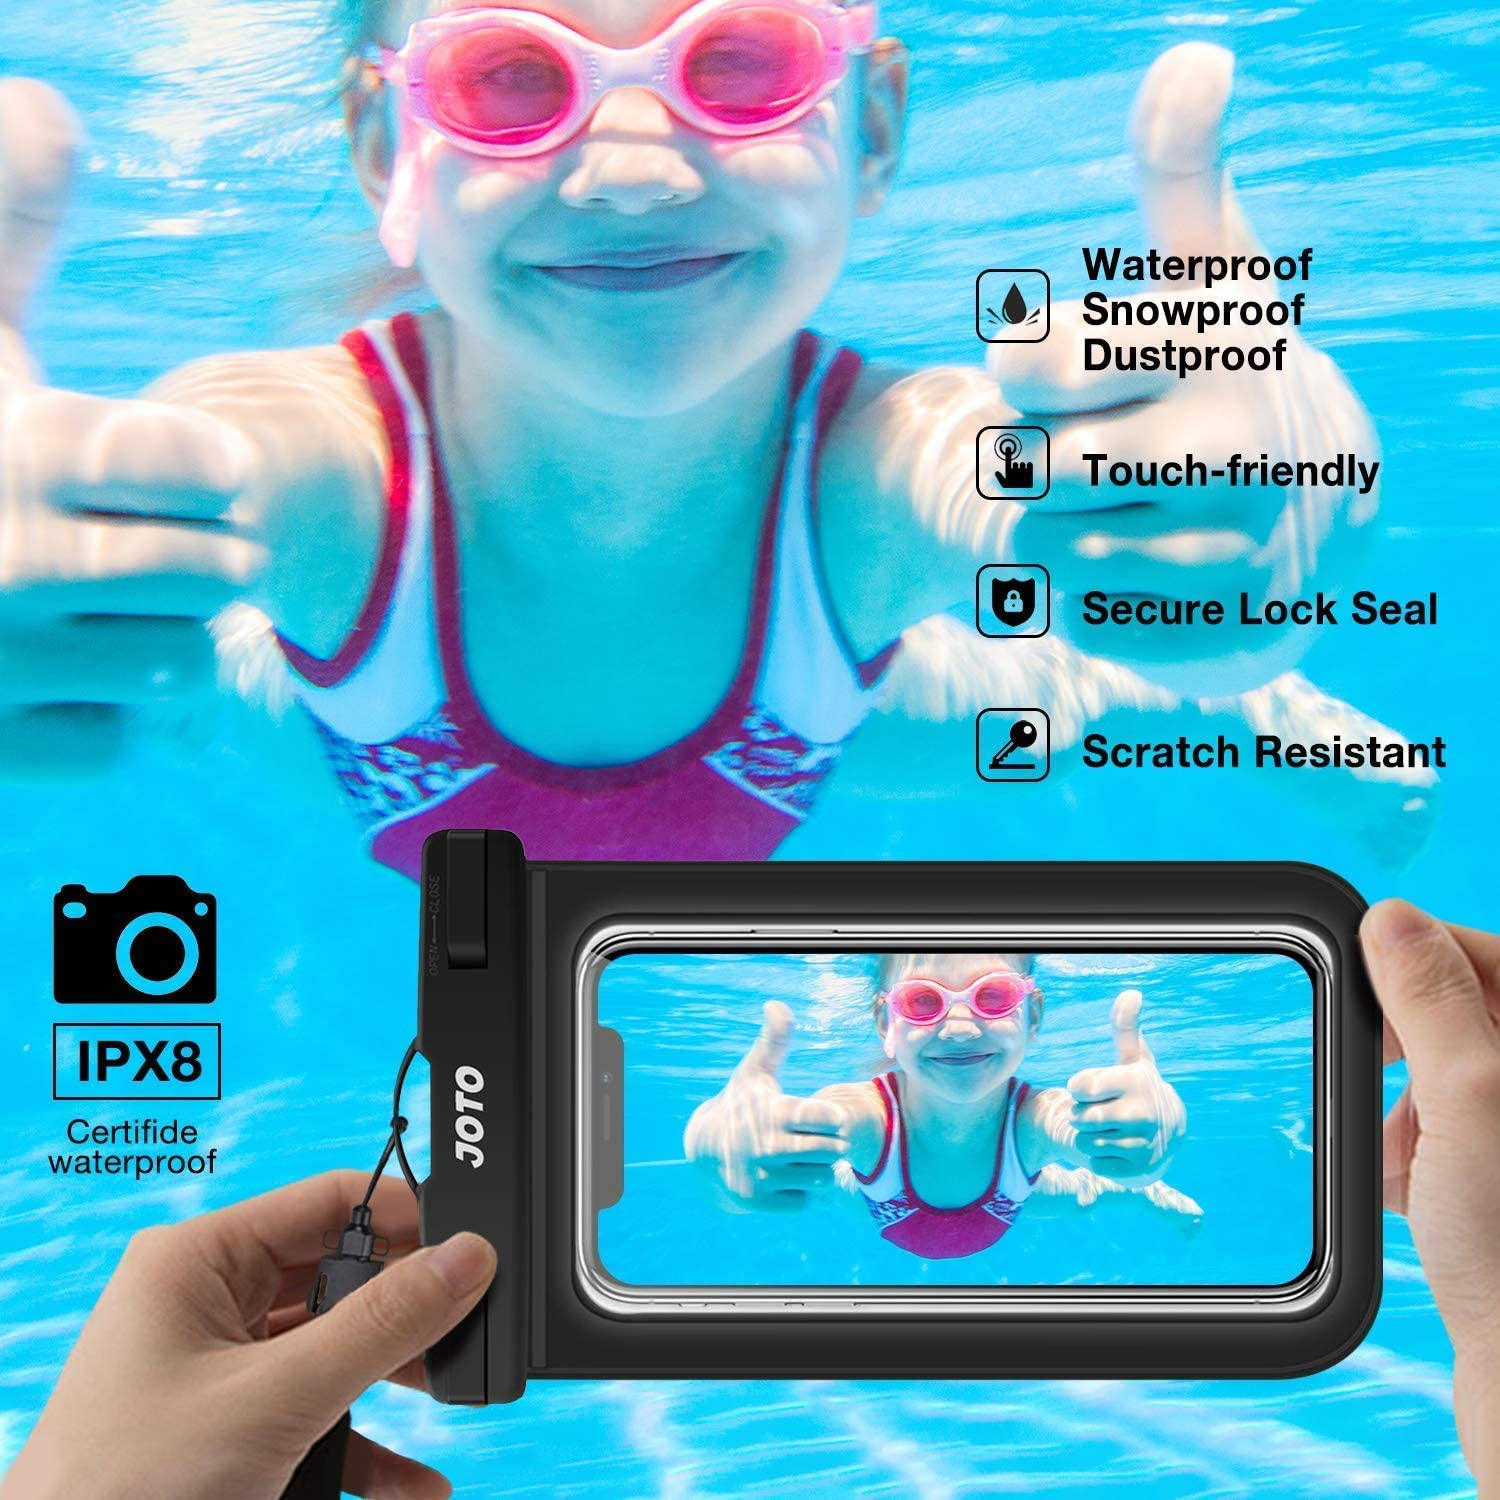 ProCase [2 Pack] Universal Waterproof Case Cellphone Dry Bag Pouch Bundle with JOTO [6 Pack] Universal Waterproof Pouch for Phones up to 7.0